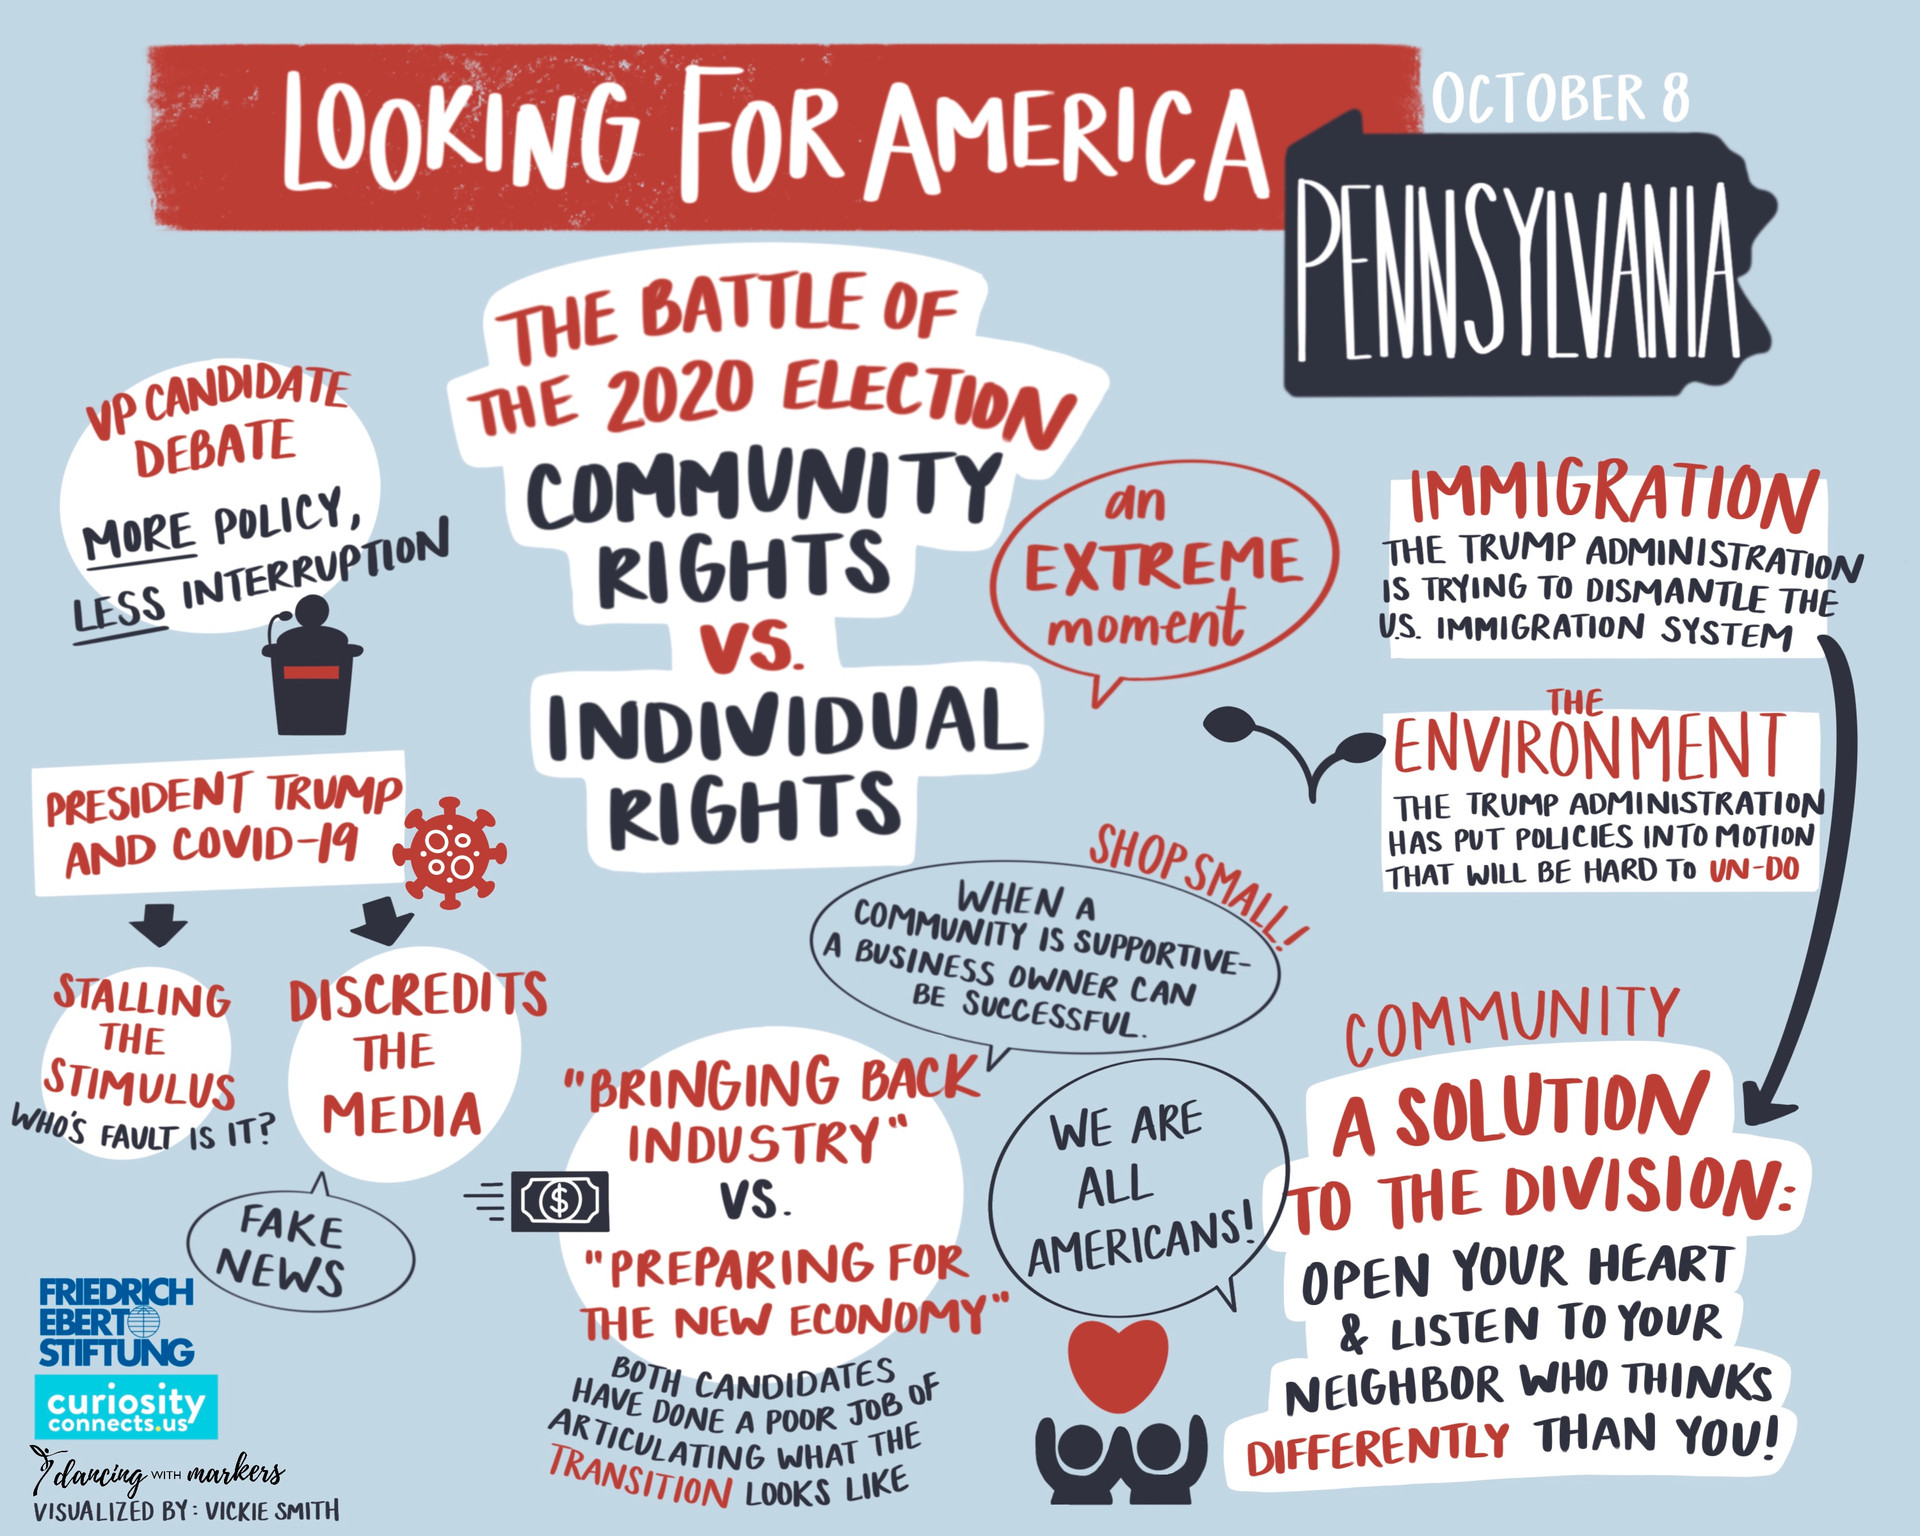 Looking for America: PA